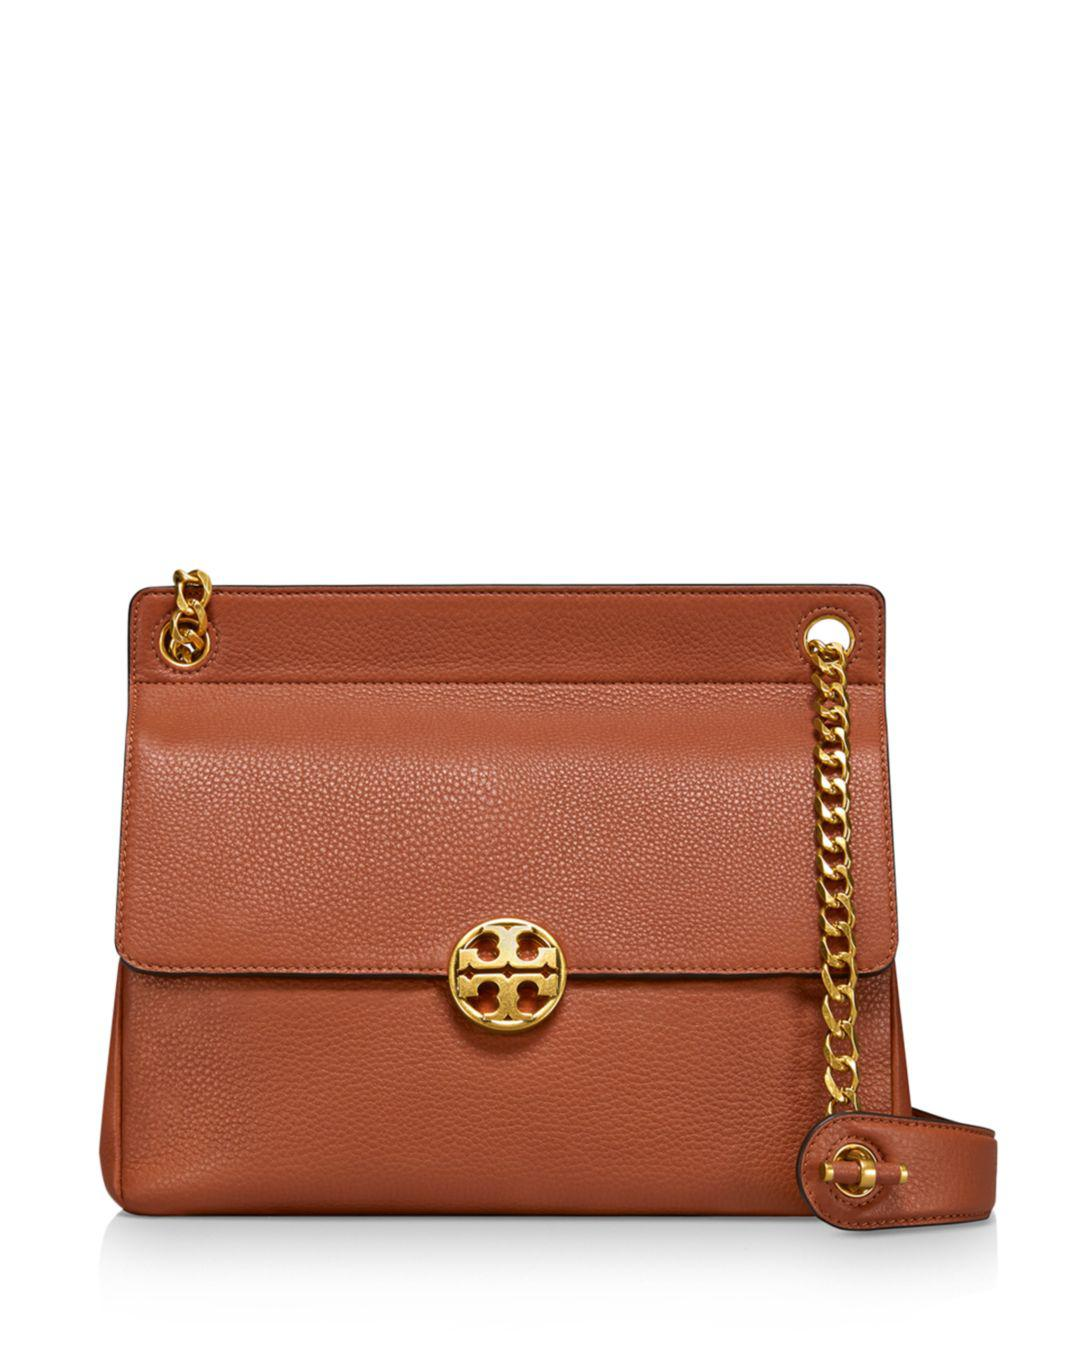 900d7cc343e7 Tory Burch Chelsea Flap Shoulder Bag in Brown - Save 18% - Lyst